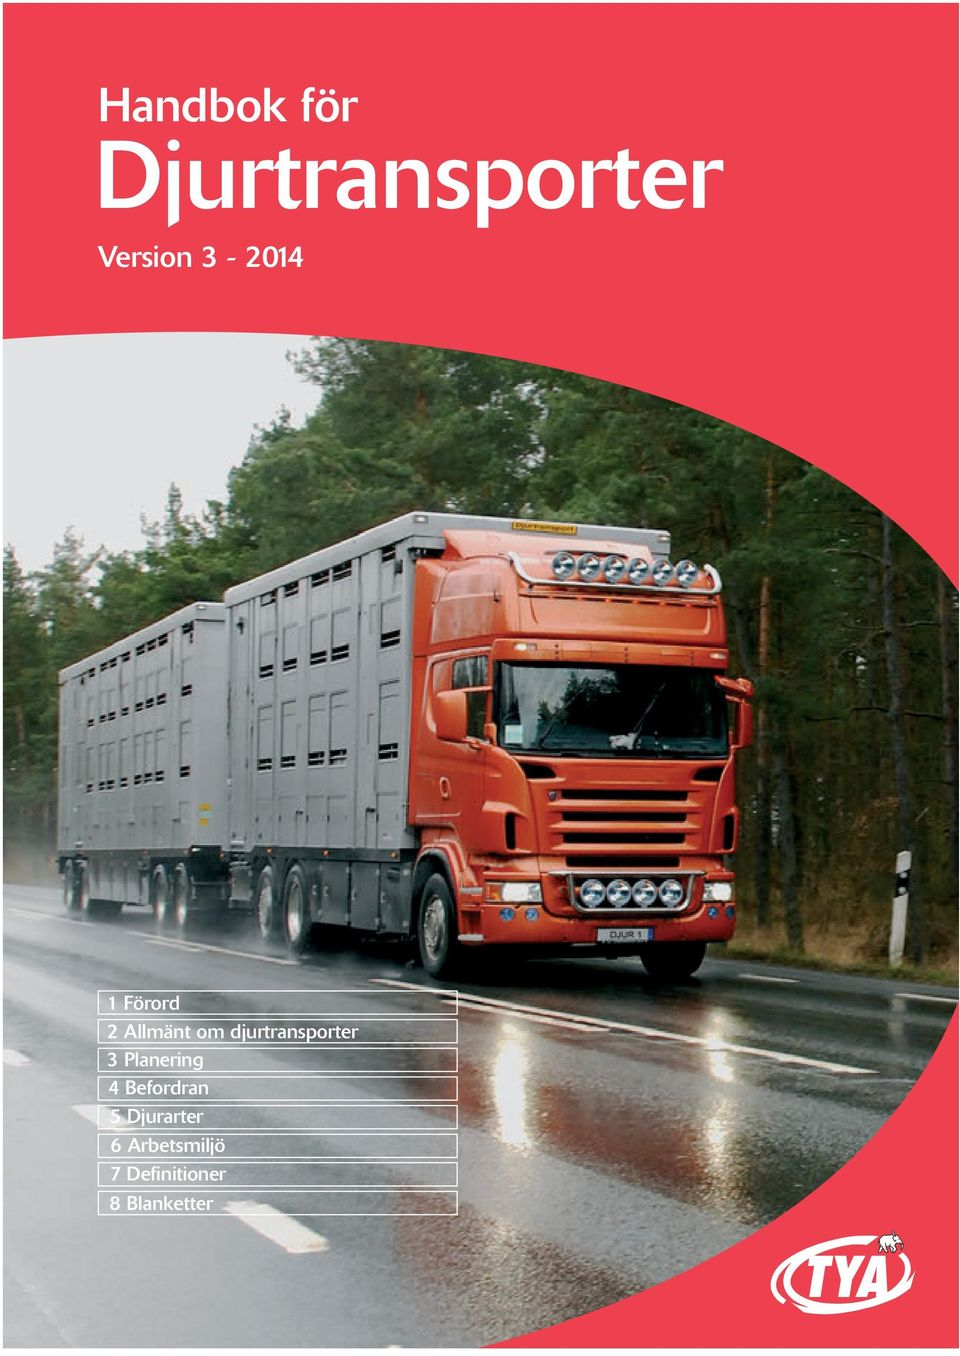 djurtransporter 3 Planering 4 Befordran